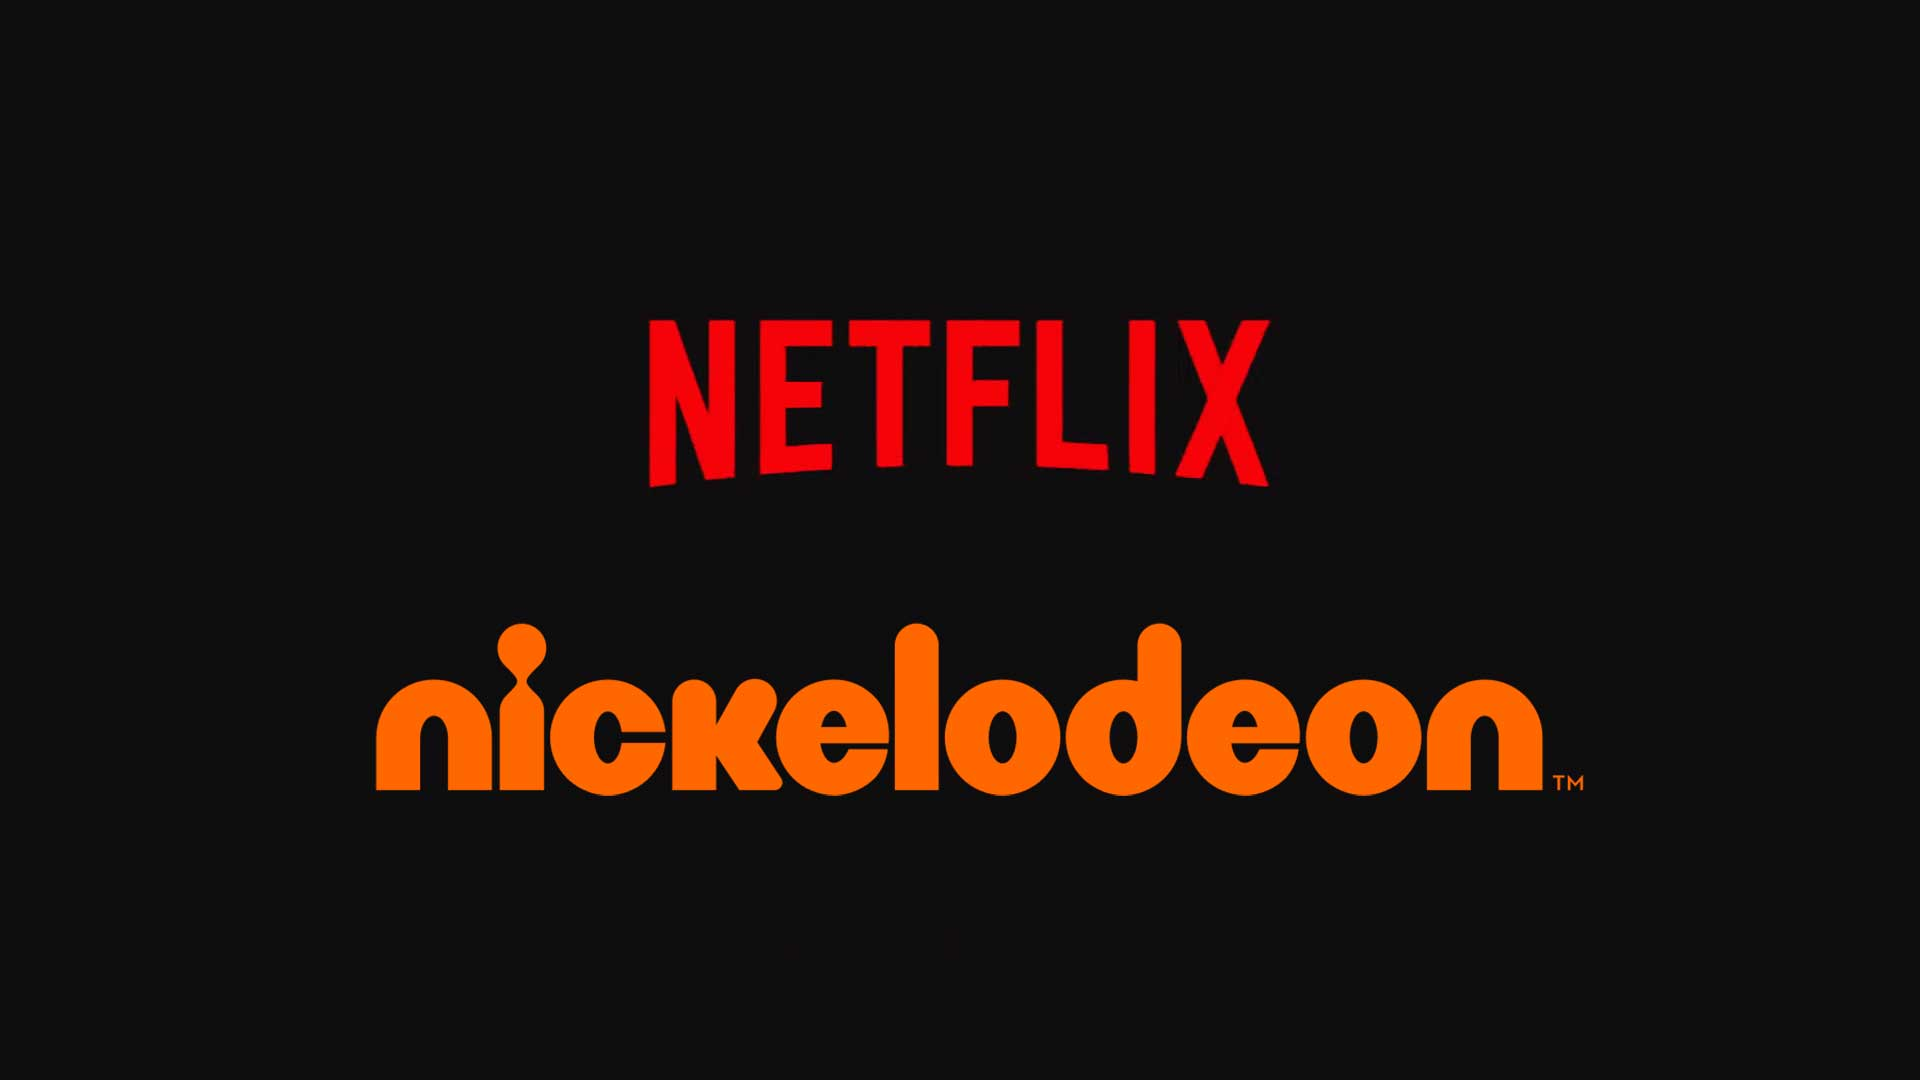 Netflix ft nickelodeon babt